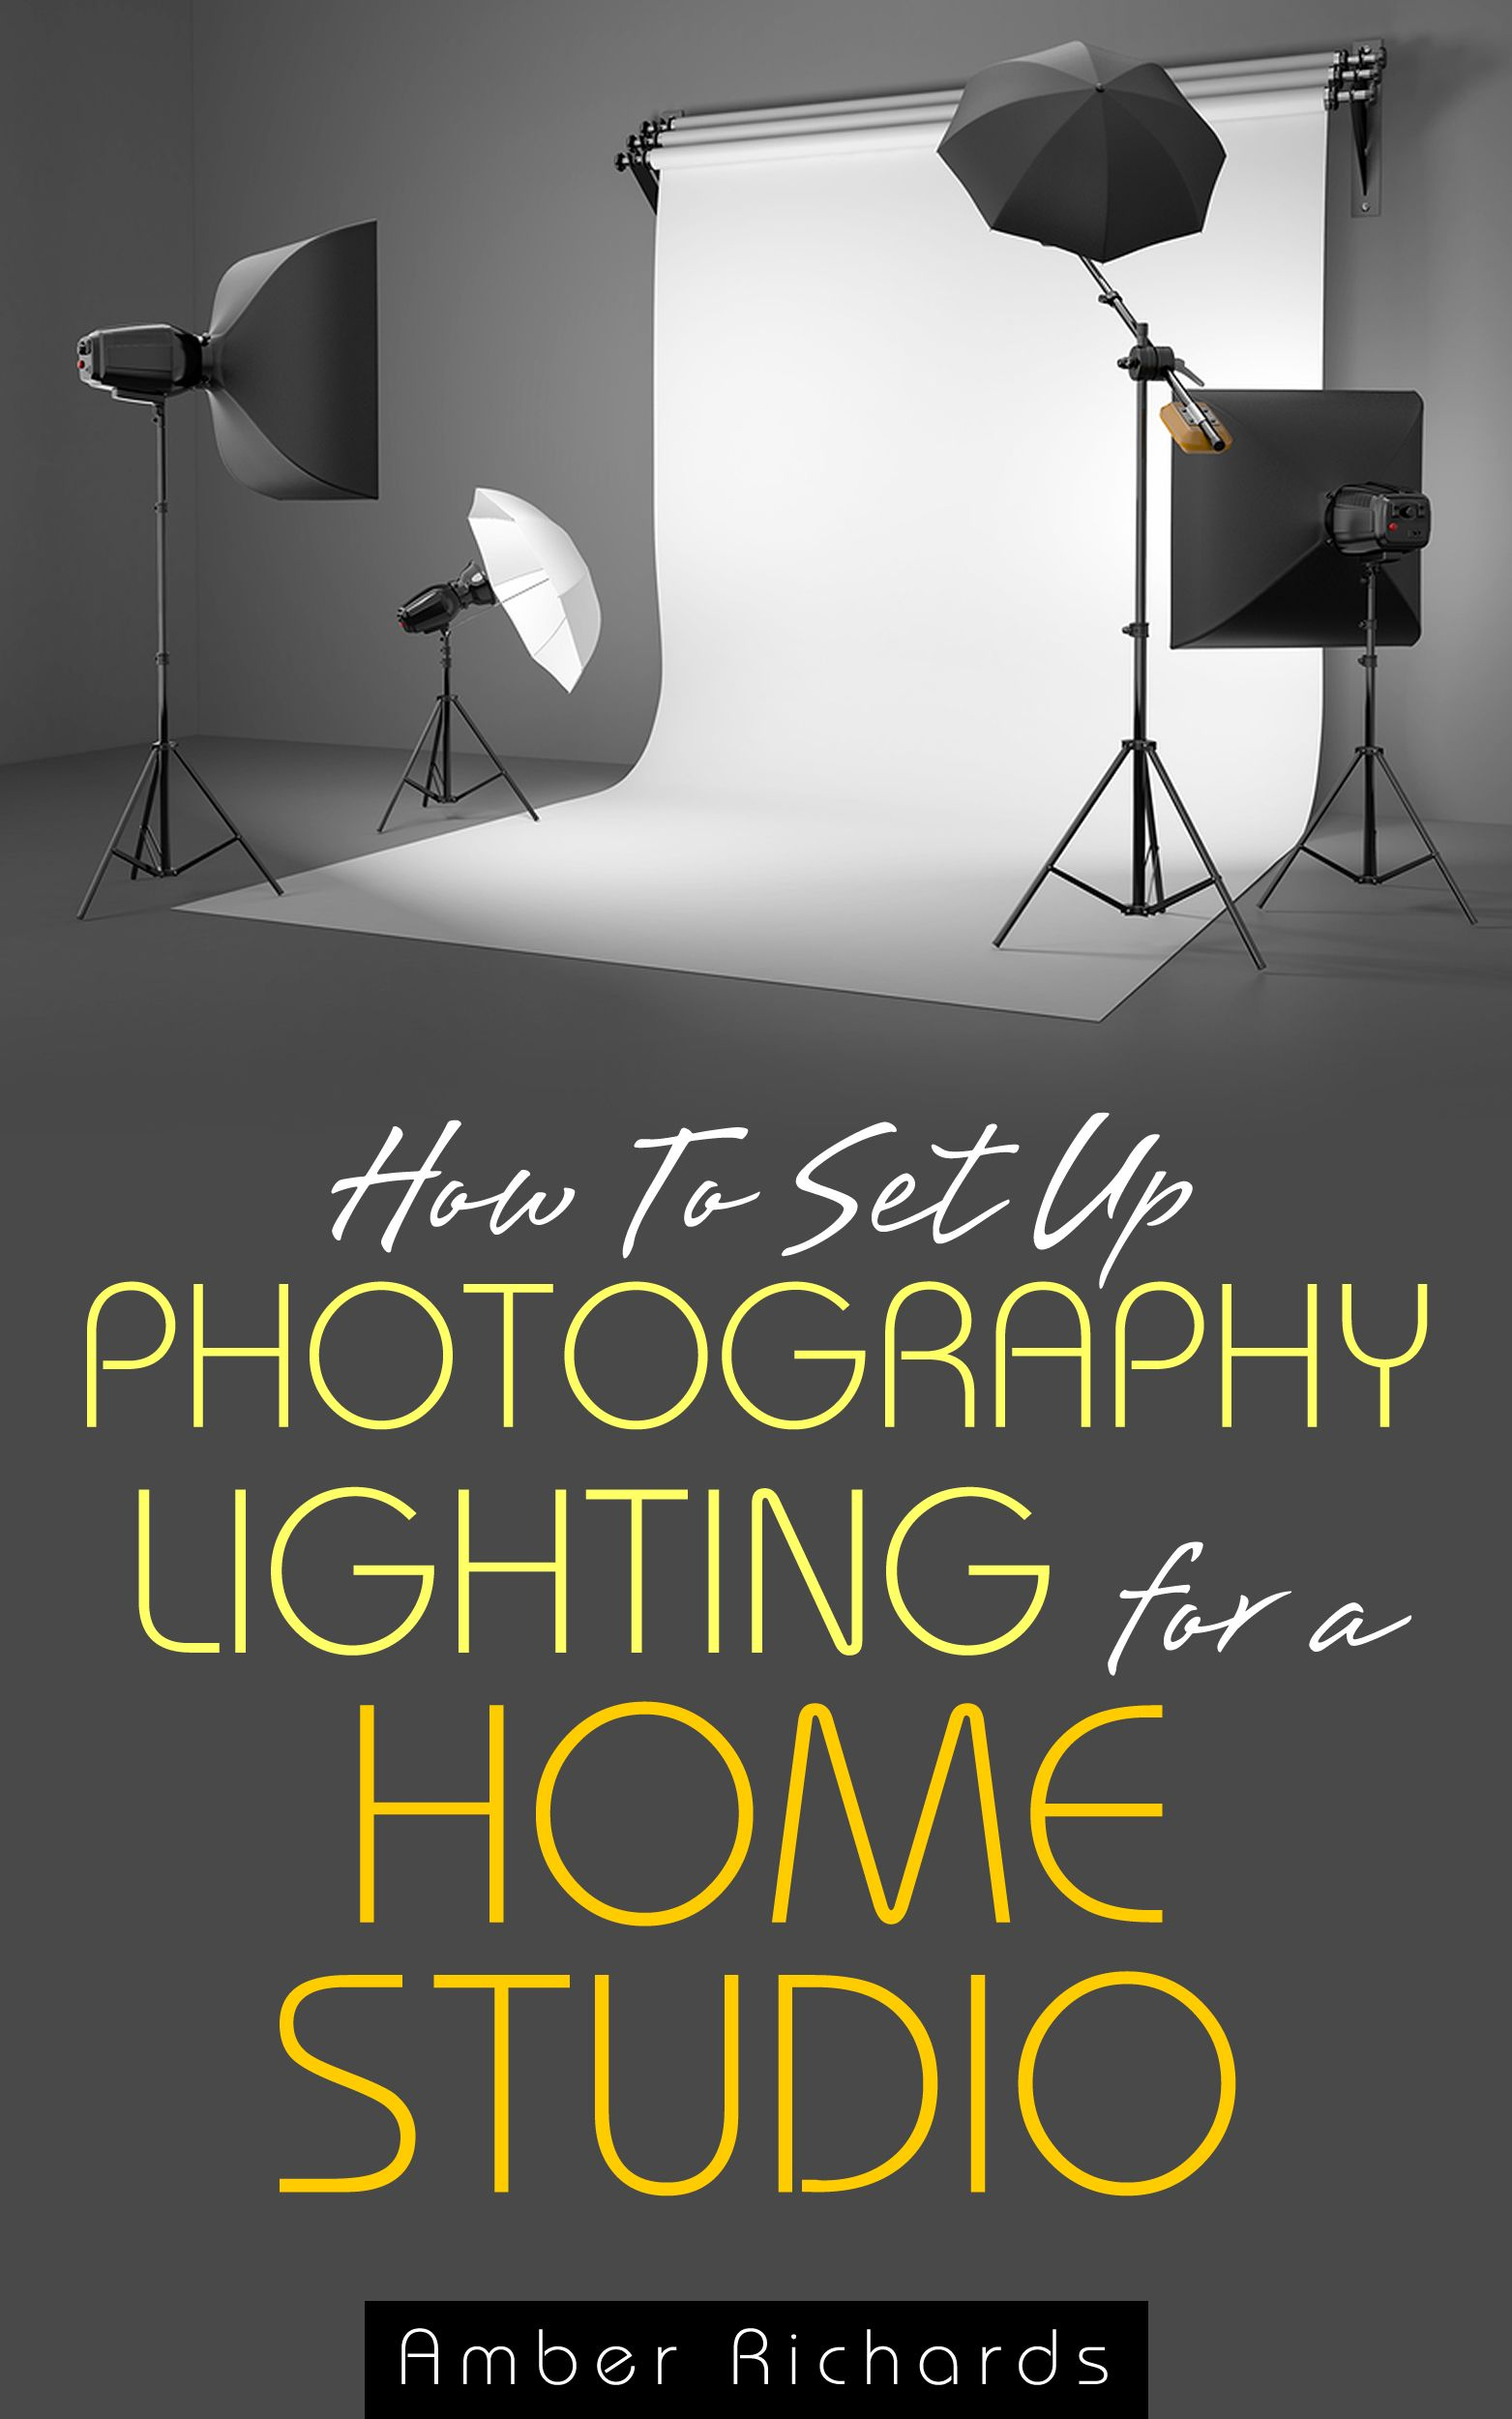 book how to set up photography lighting for a home studio perfect